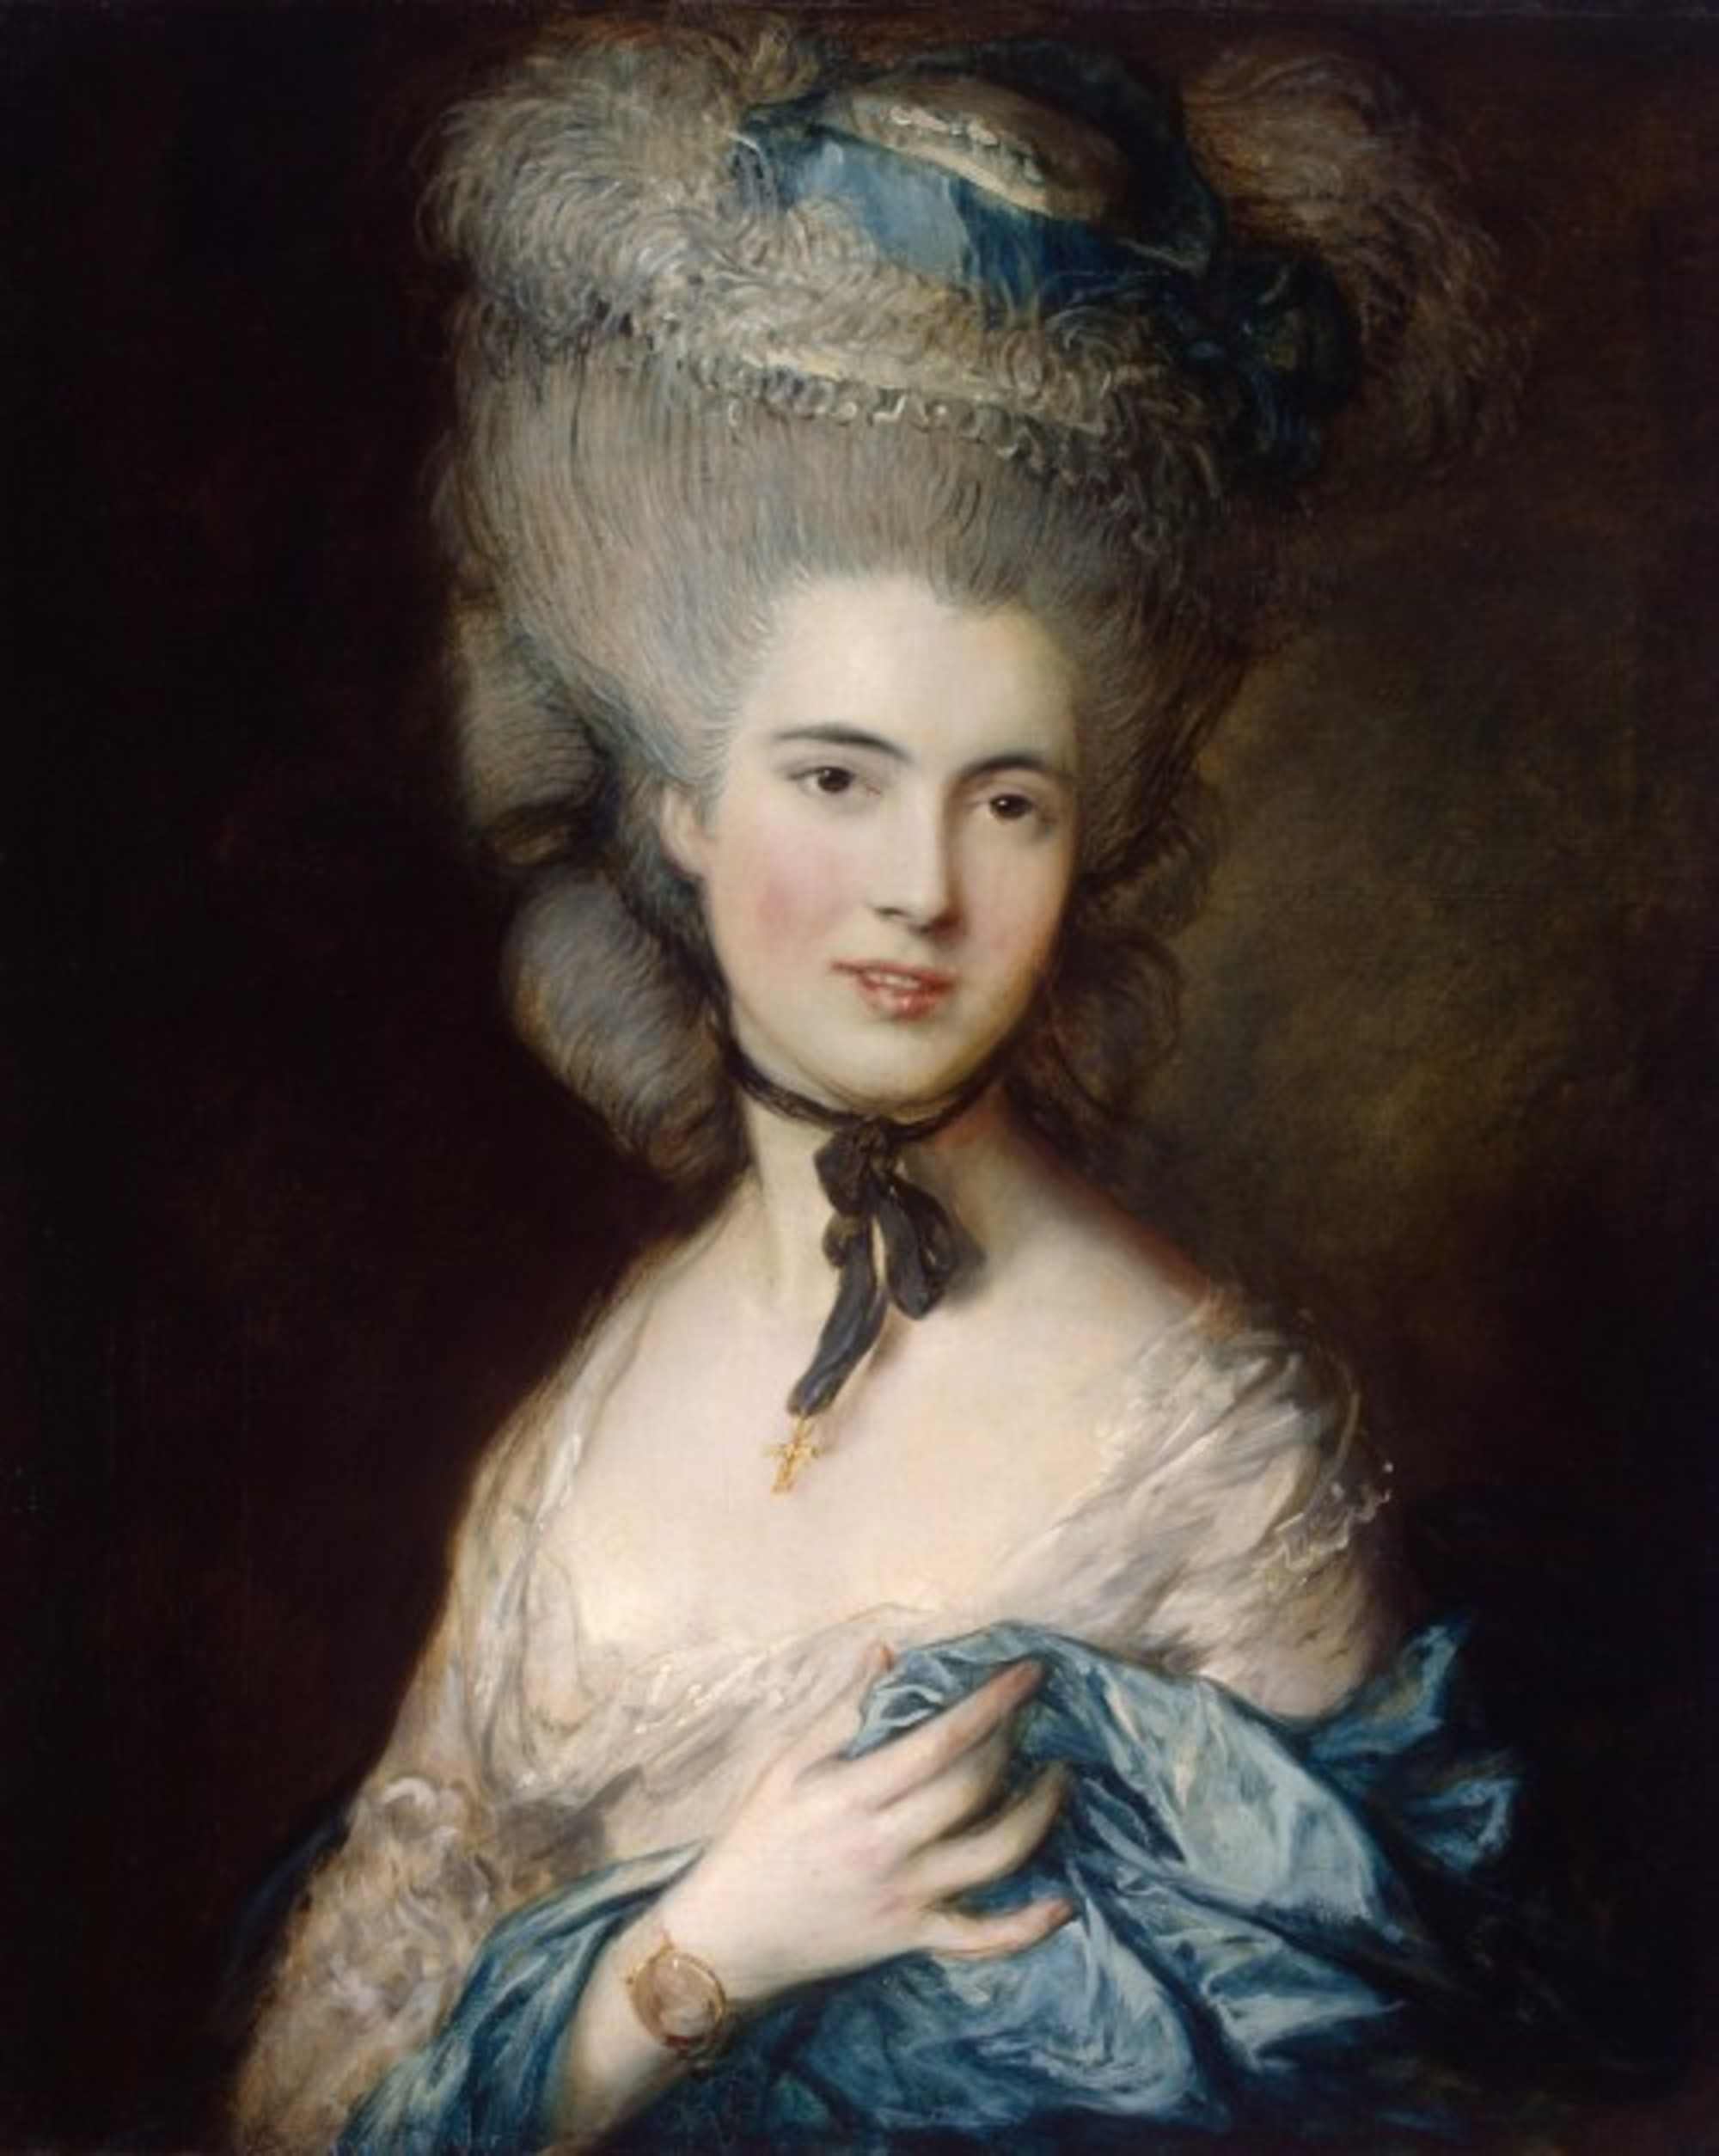 Thomas_Gainsborough_-_Portrait_of_a_Lady_in_Blue_-_WGA8414.jpg